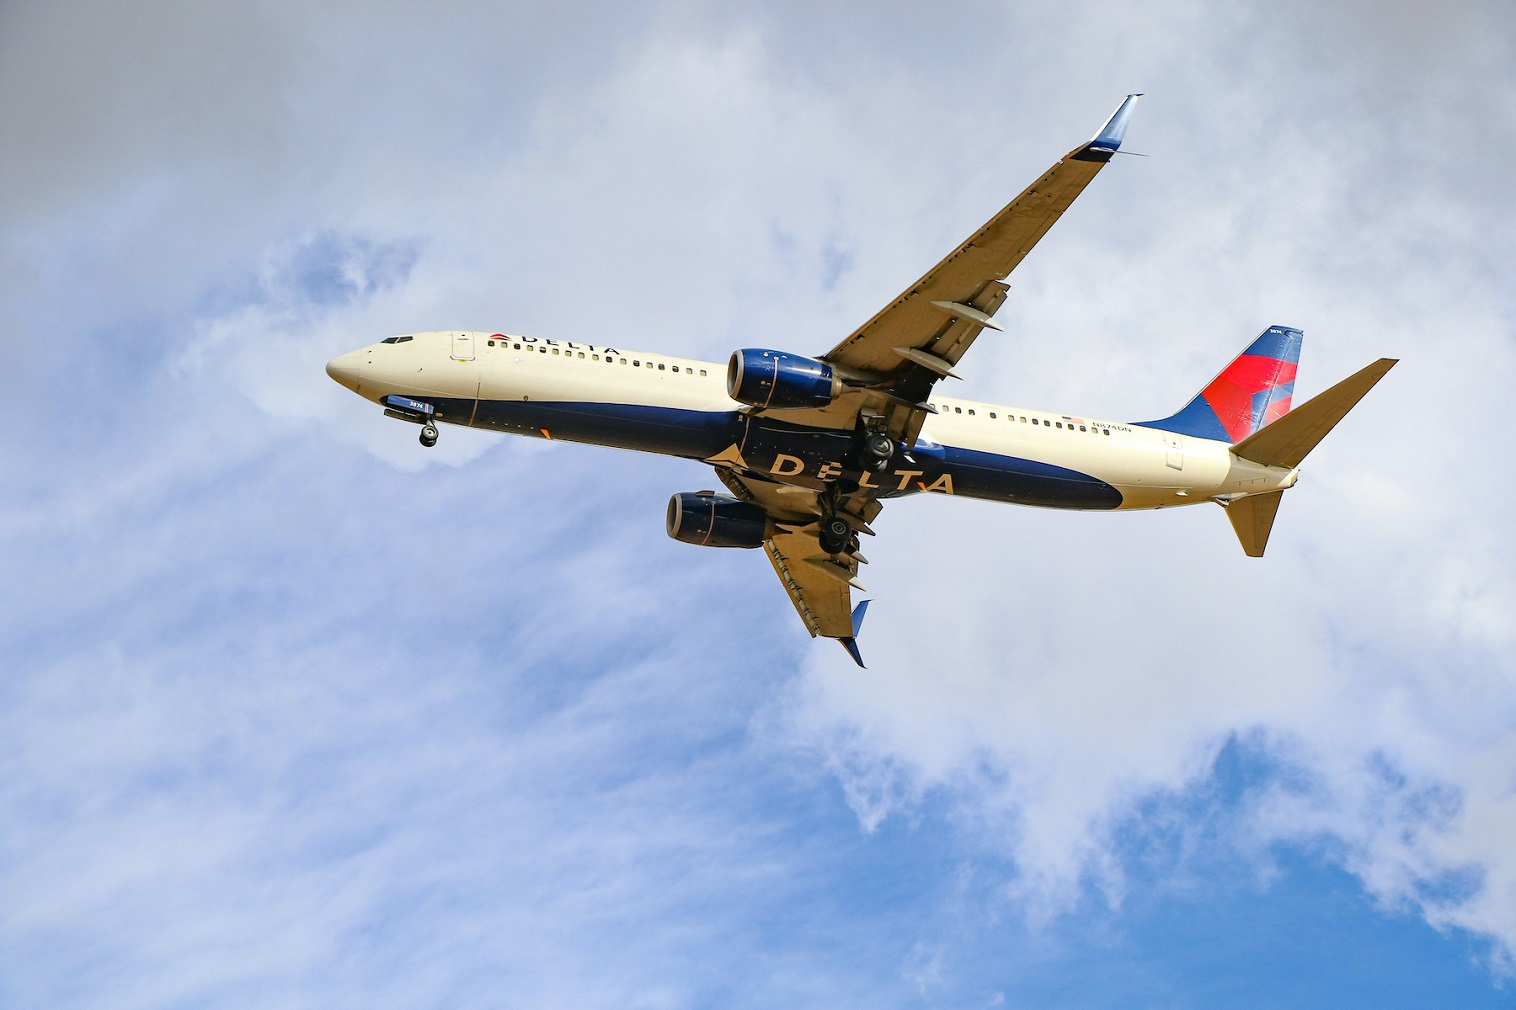 Southern California's Ontario International Airport (ONT) will soon offer air travelers a new option to reach Seattle-Tacoma International Airport (SEA) when Delta Air Lines service takes off October 1.